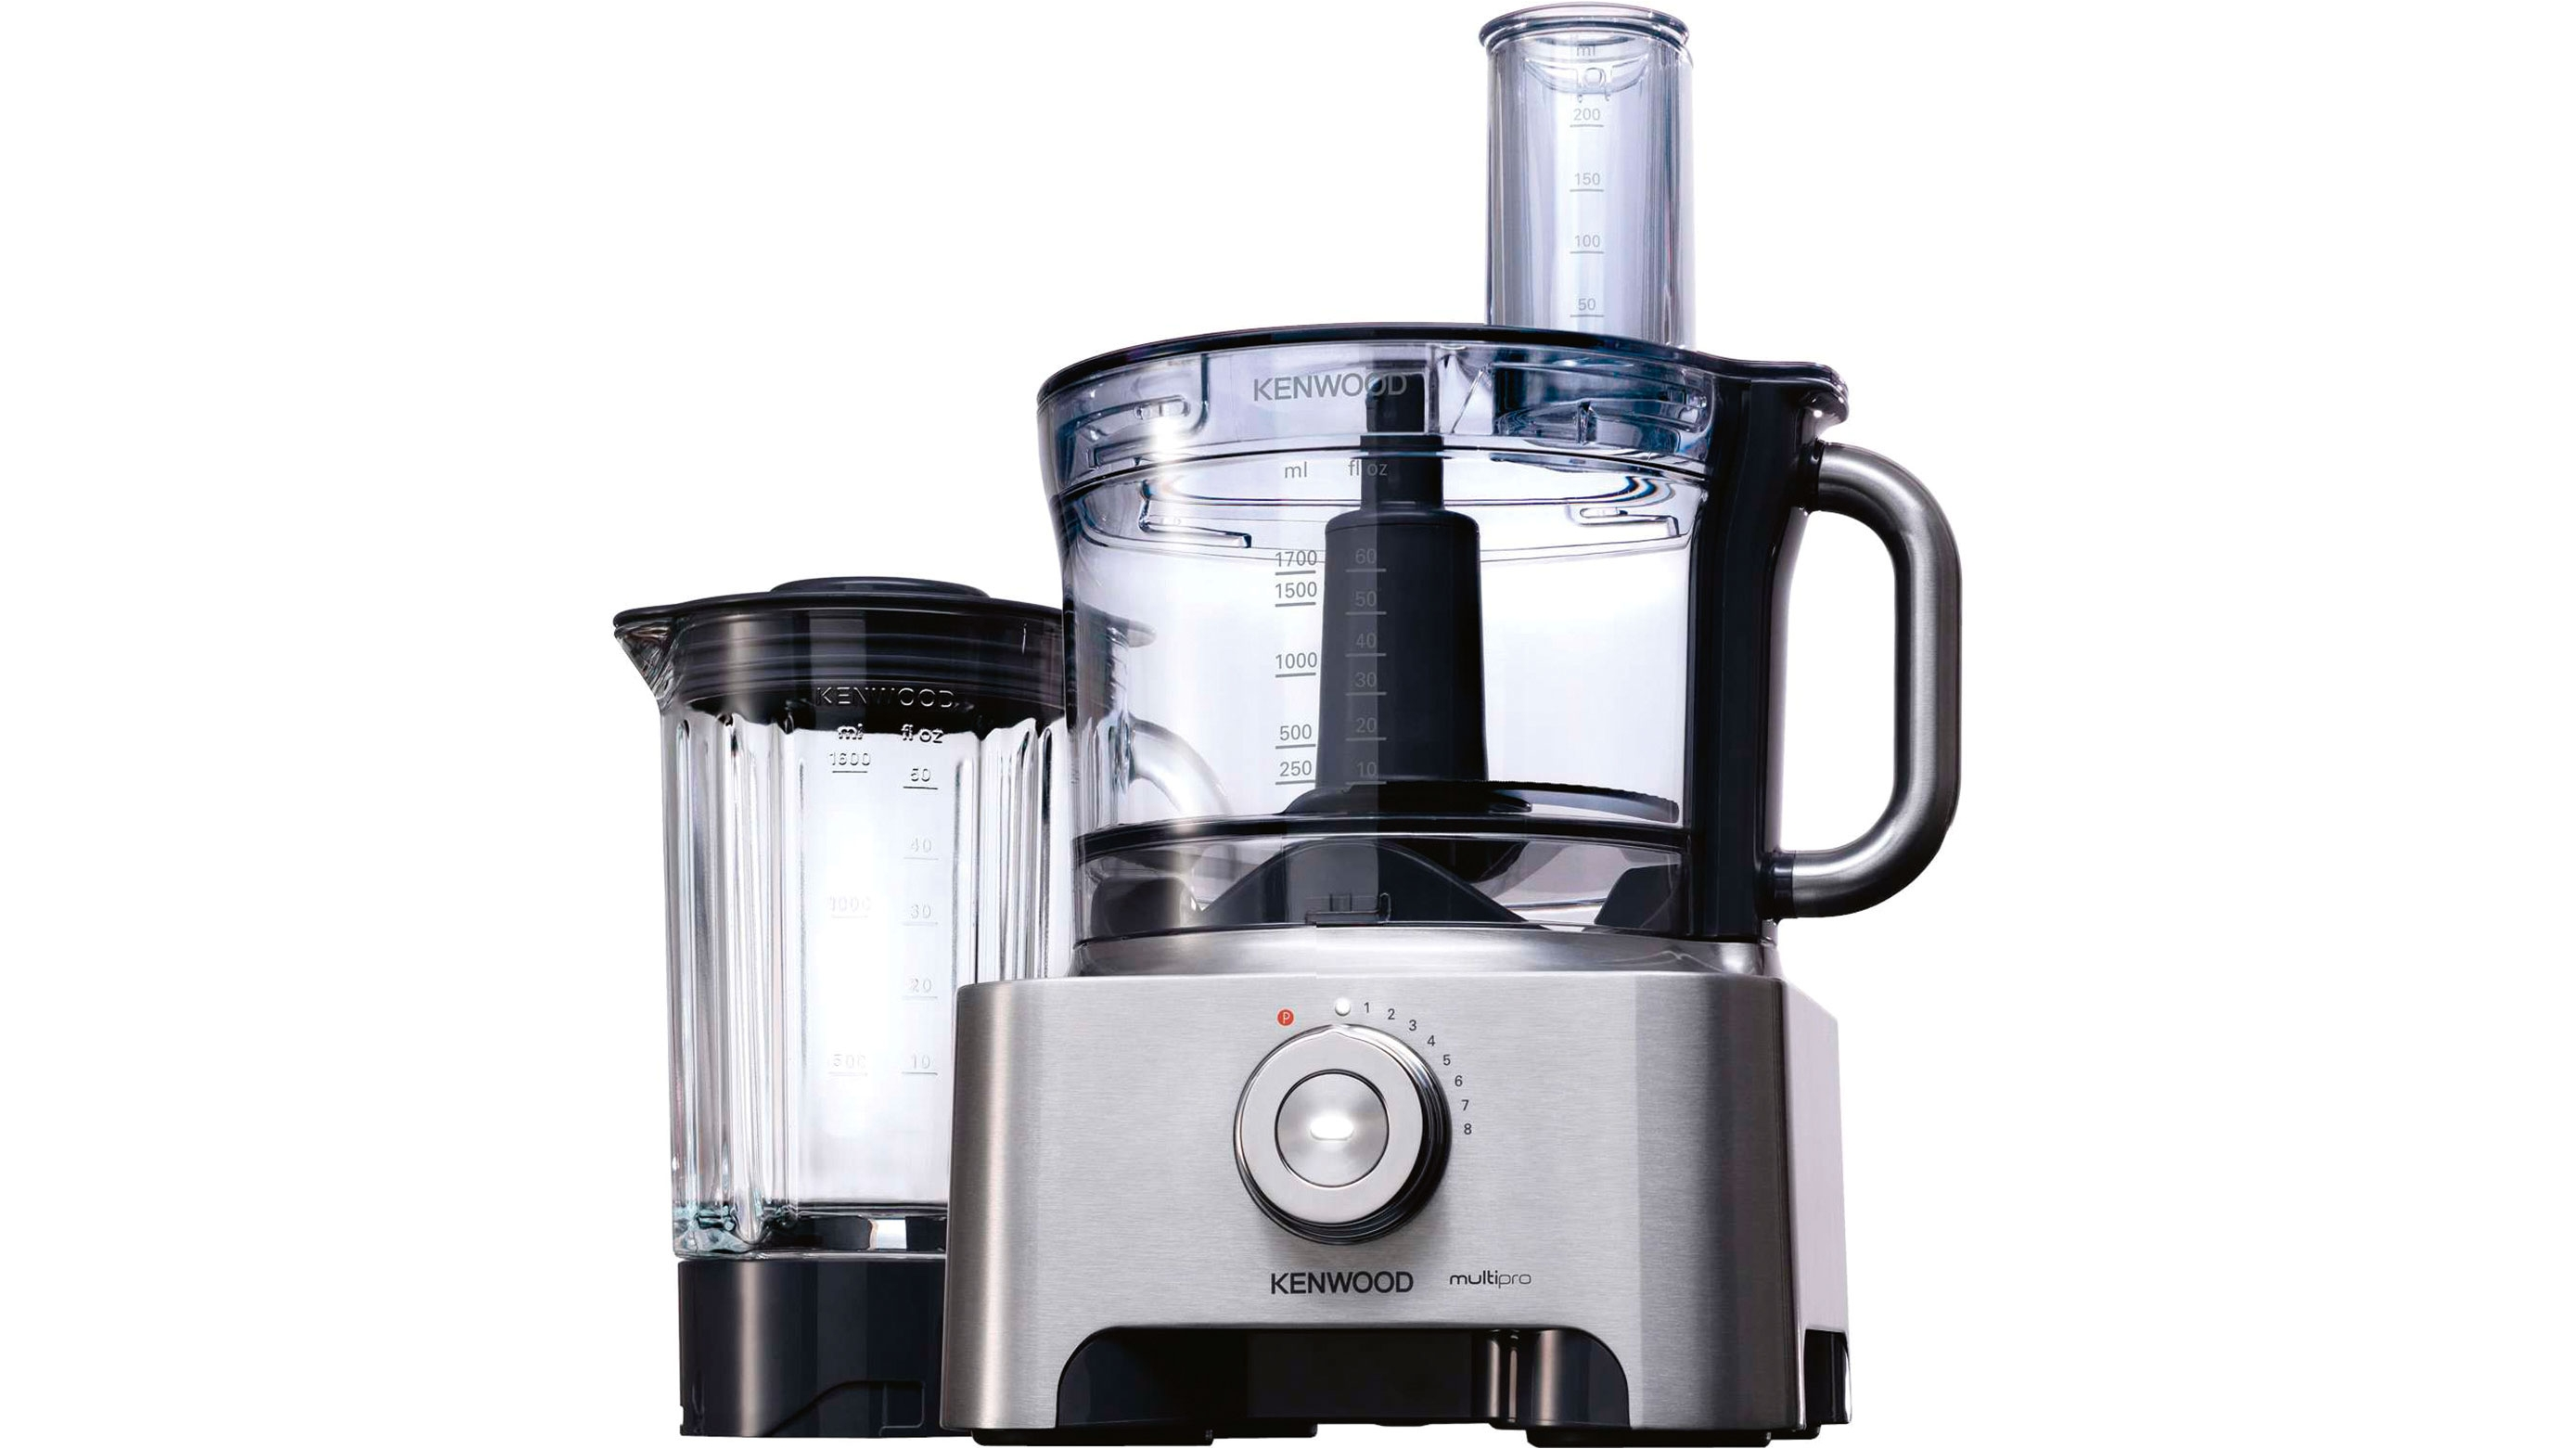 Things You Can Do With A Food Processor